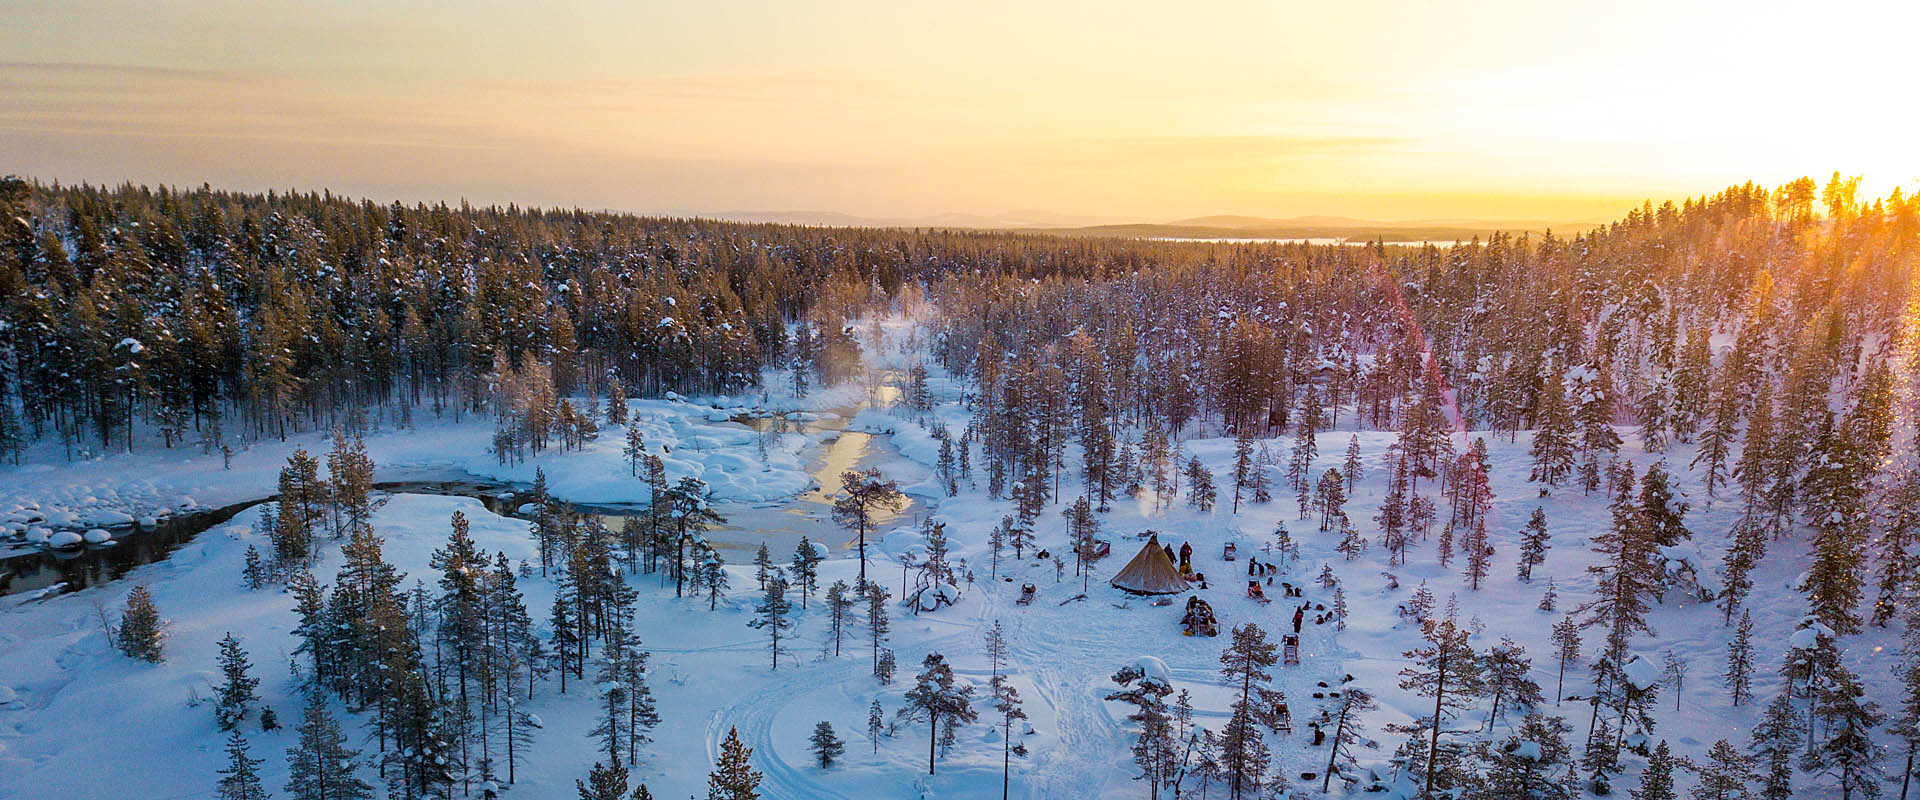 Sami experiences in Lapland Sweden